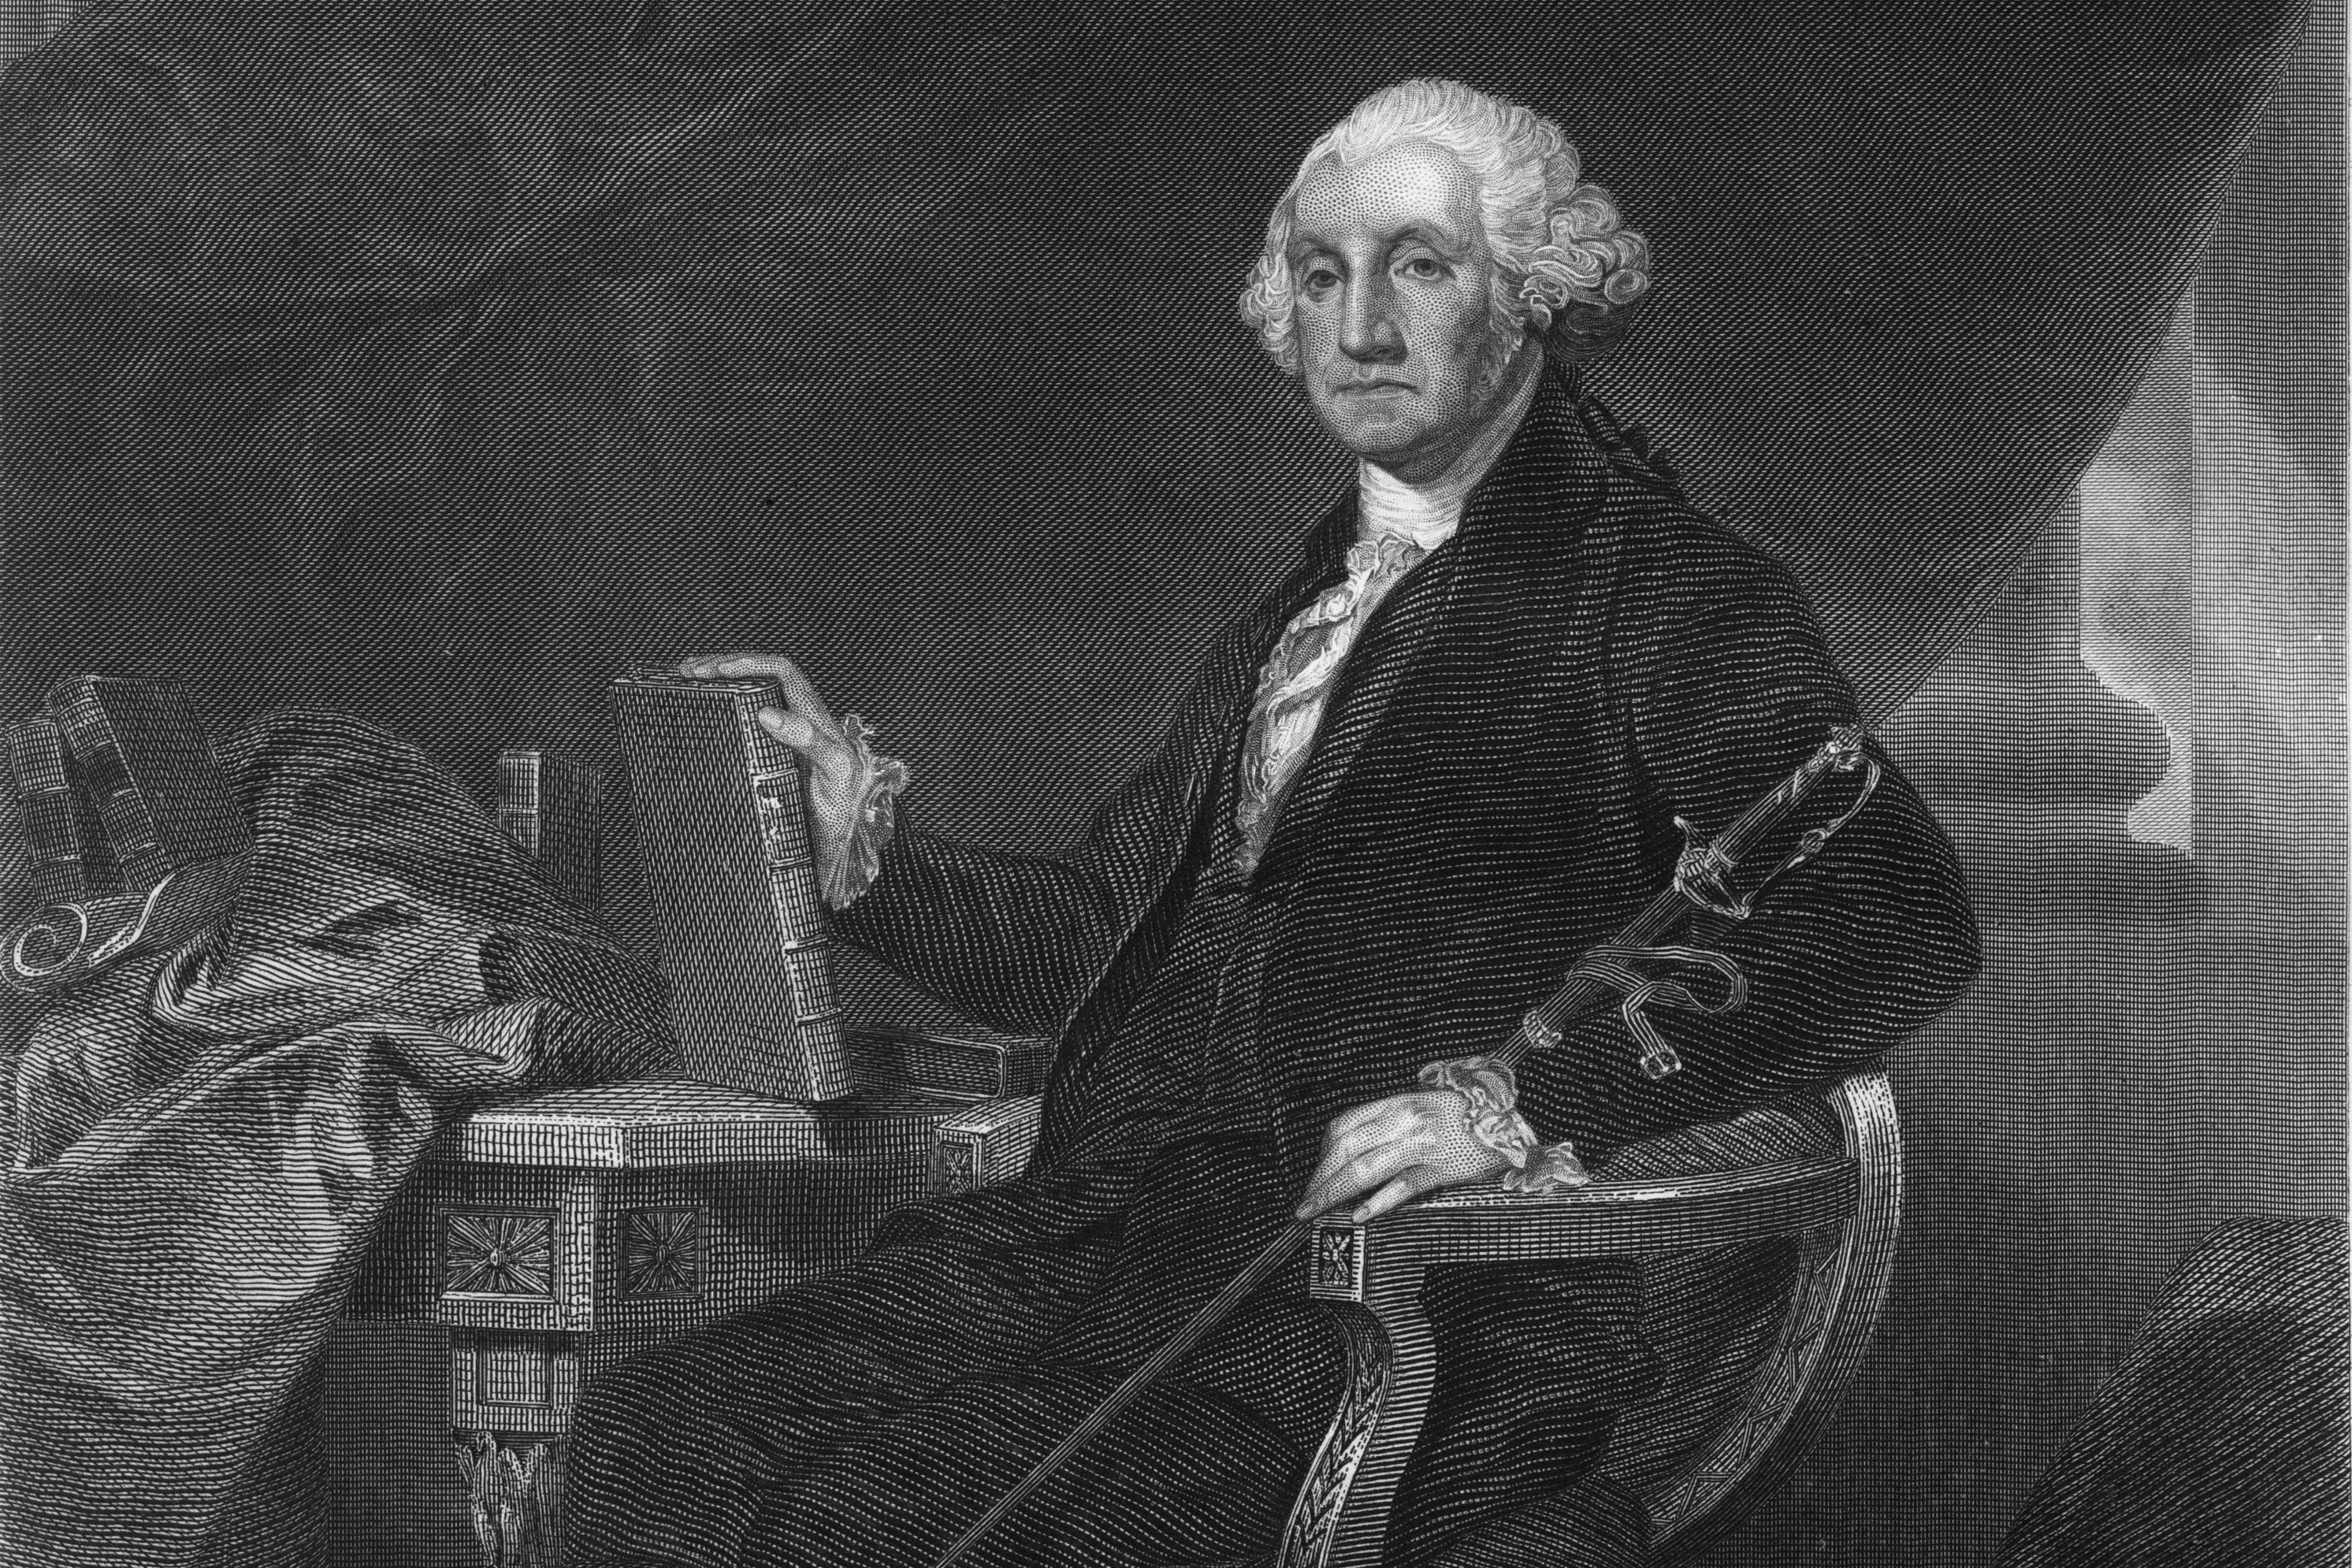 George Washington from the National Portrait Gallery of Eminent Americans, Vol. I, 1862. (iStock Image)